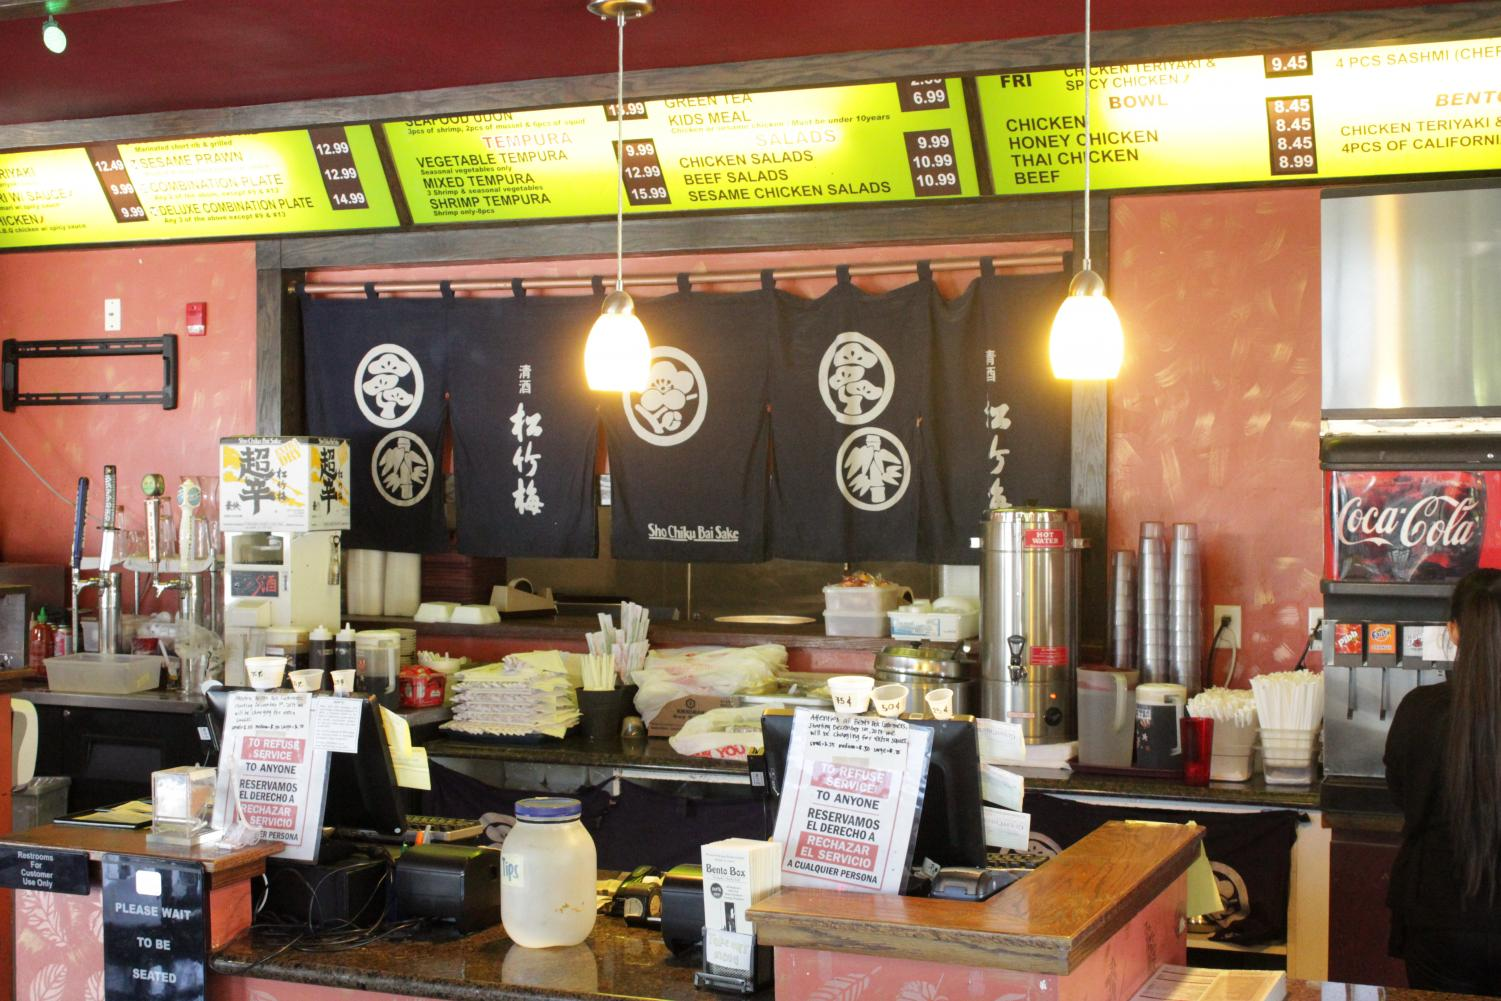 Bento Box has a location on 65th Street that is within walking distance of Sacramento State. Bento Box was voted 'Best Restaurant Near Campus' by readers of The State Hornet for the second year in a row.